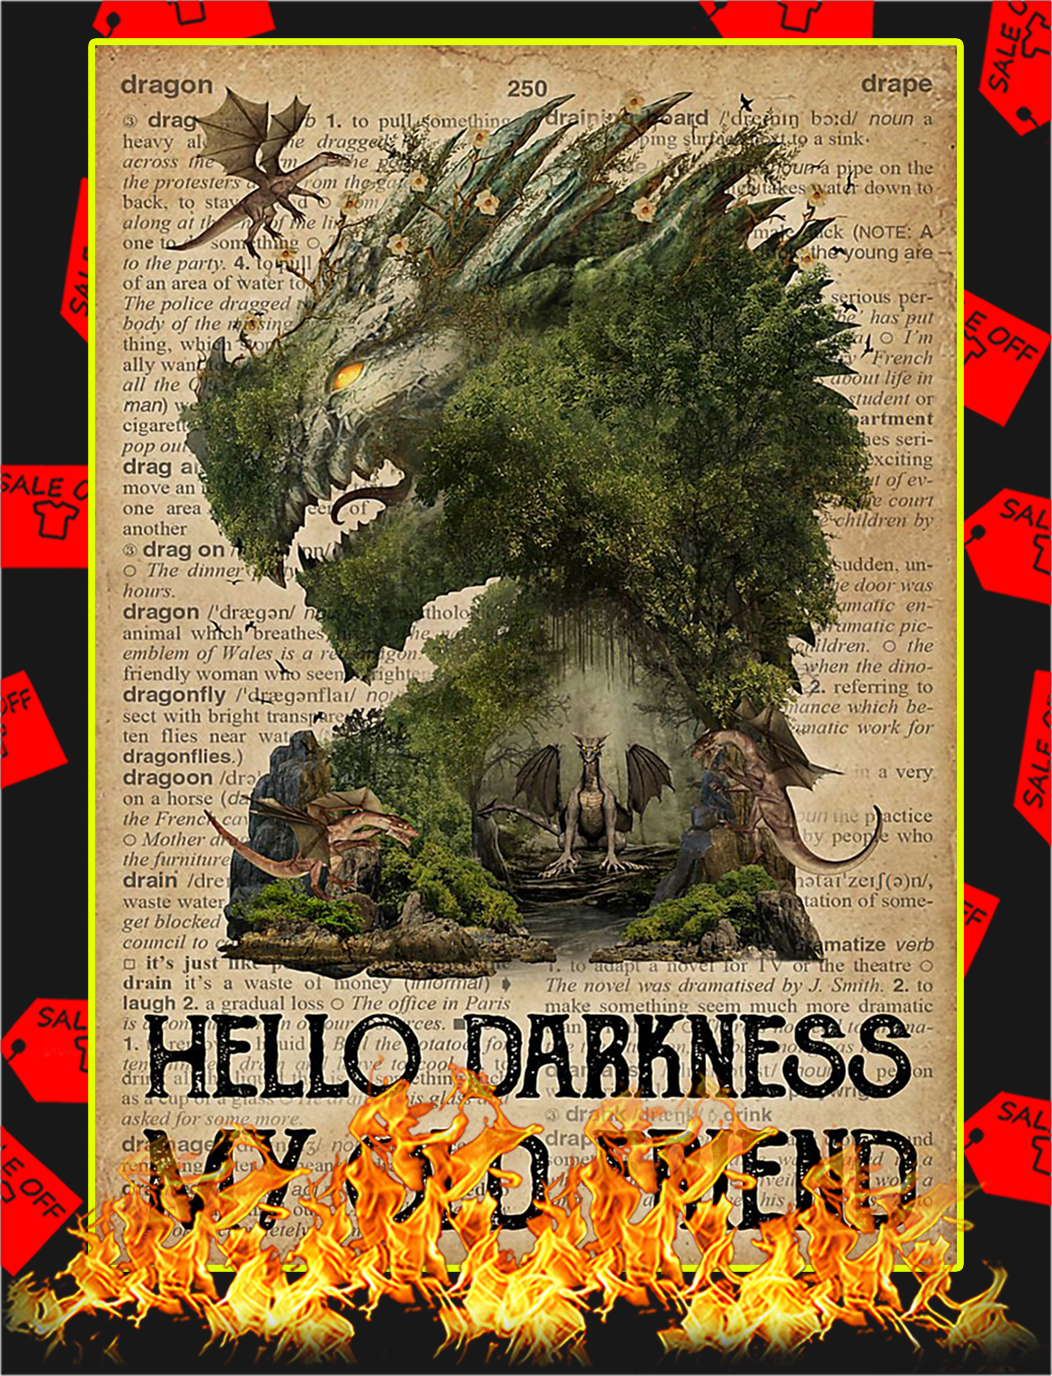 Dragon hello darkness my old friend poster - A3